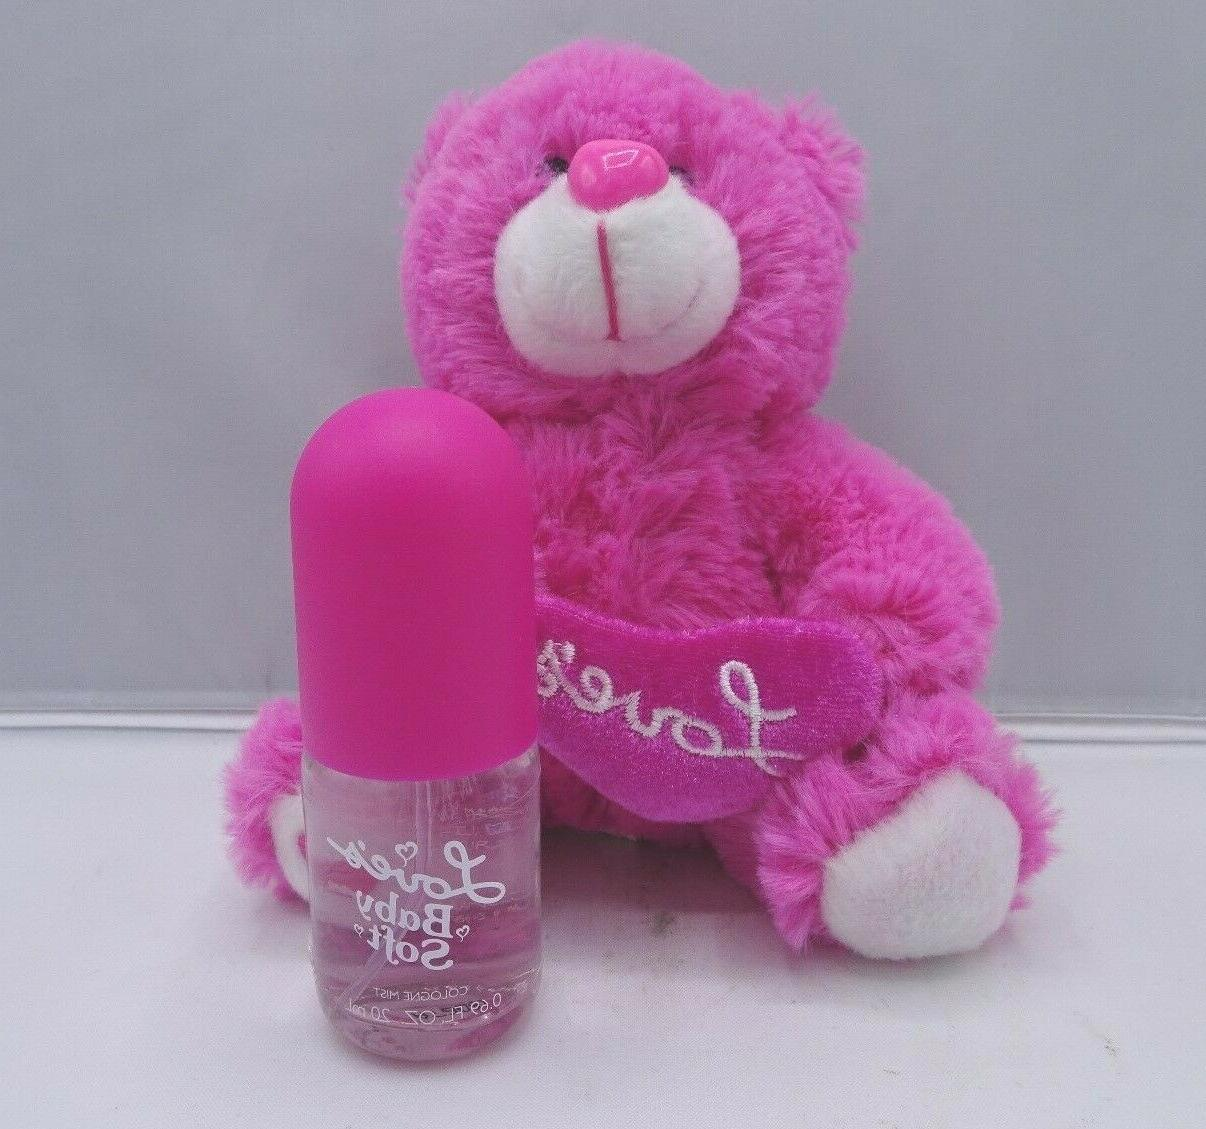 LOVE'S BABY SOFT BY DANA GIFT SET OZ COLOGNE MIST BEAR - BOXED